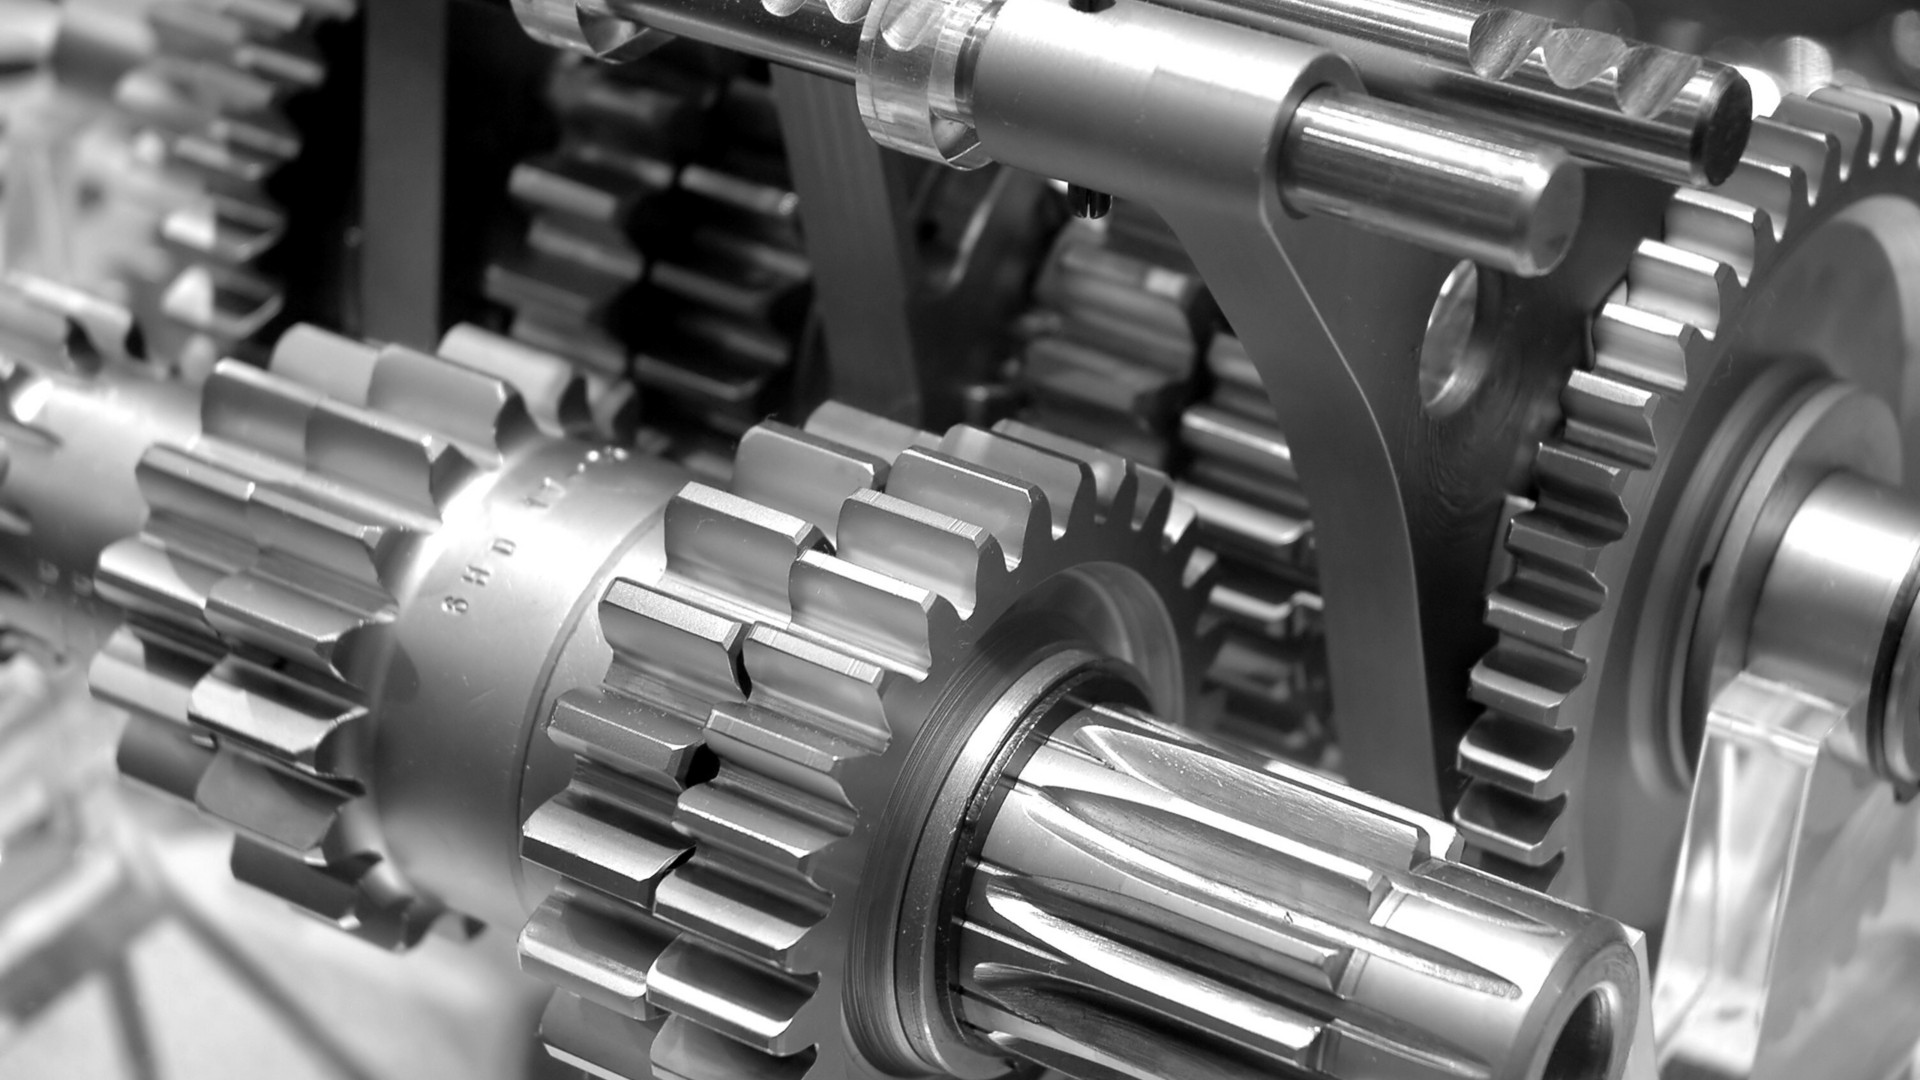 machine_gears_monochrome_desktop_1920x1080_hd-wallpaper-1149329